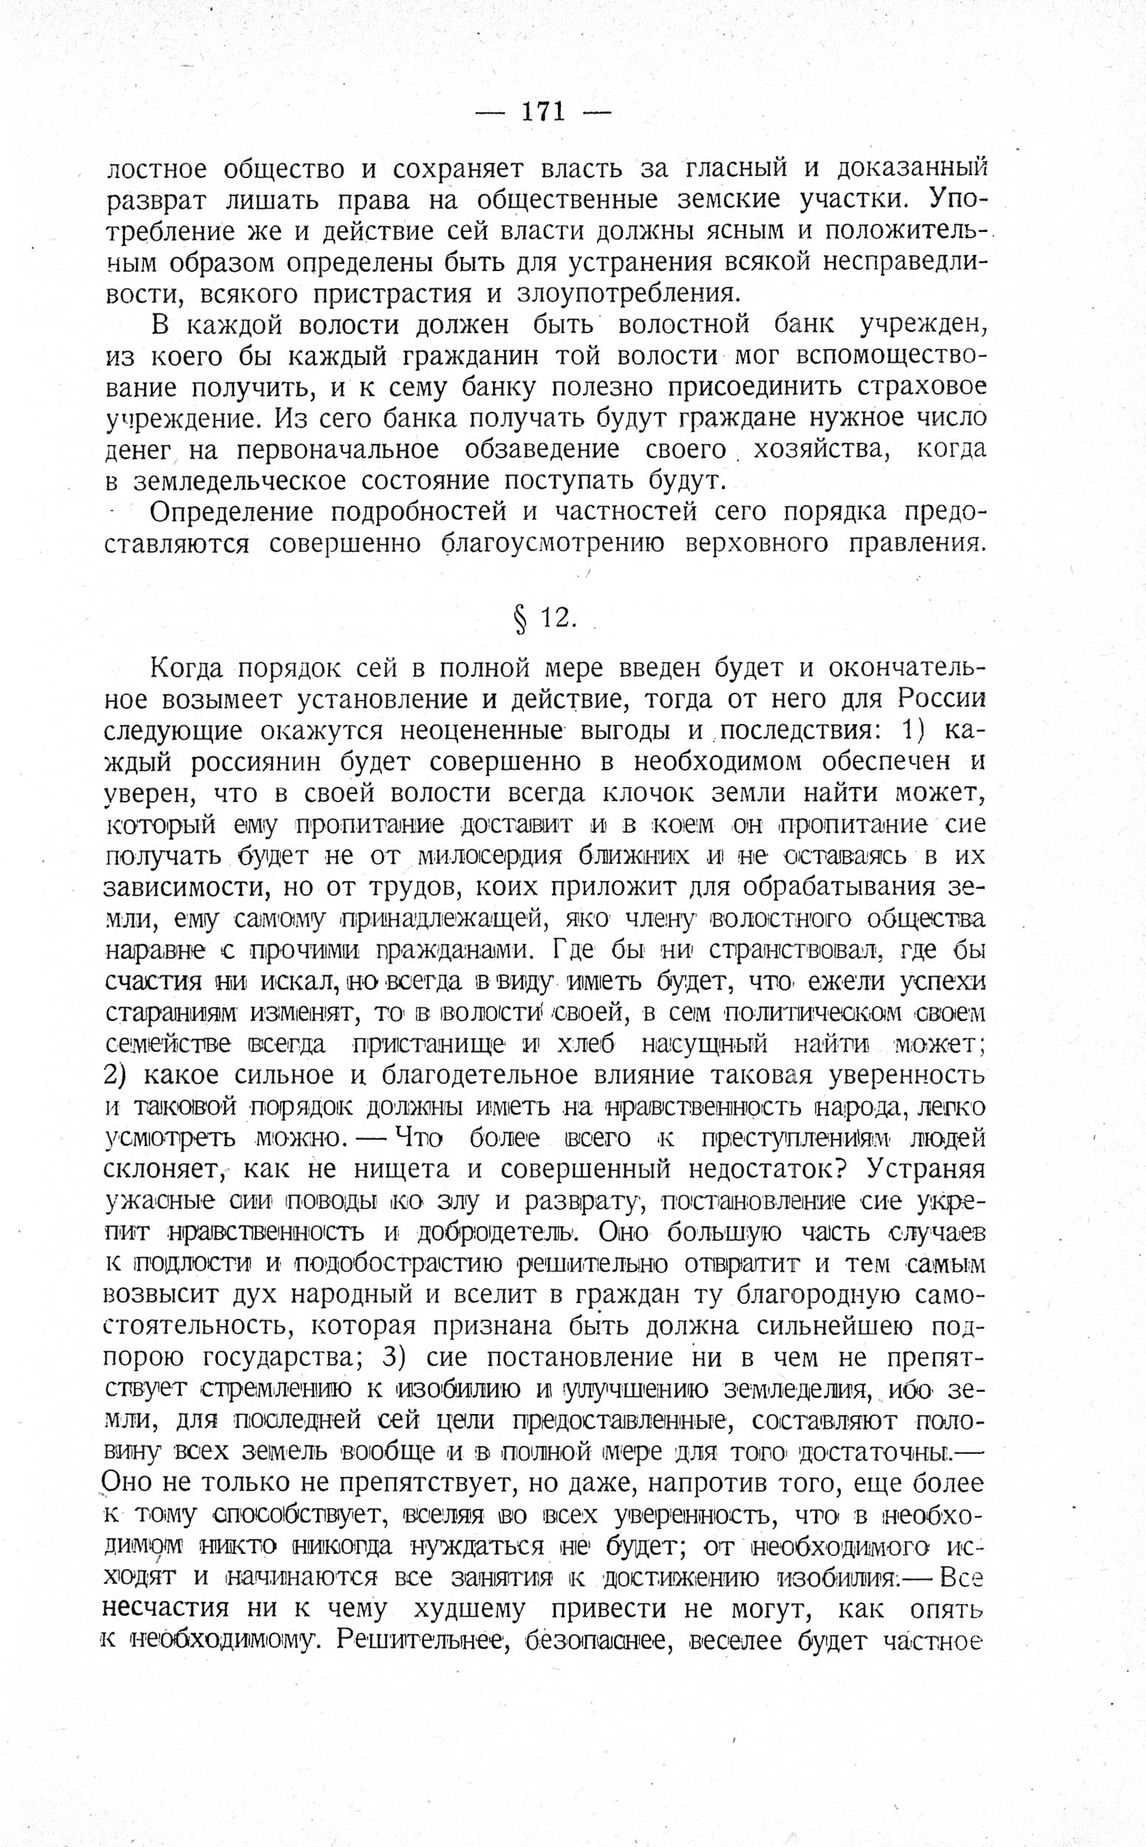 http://elib.shpl.ru/pages/625754/zooms/7